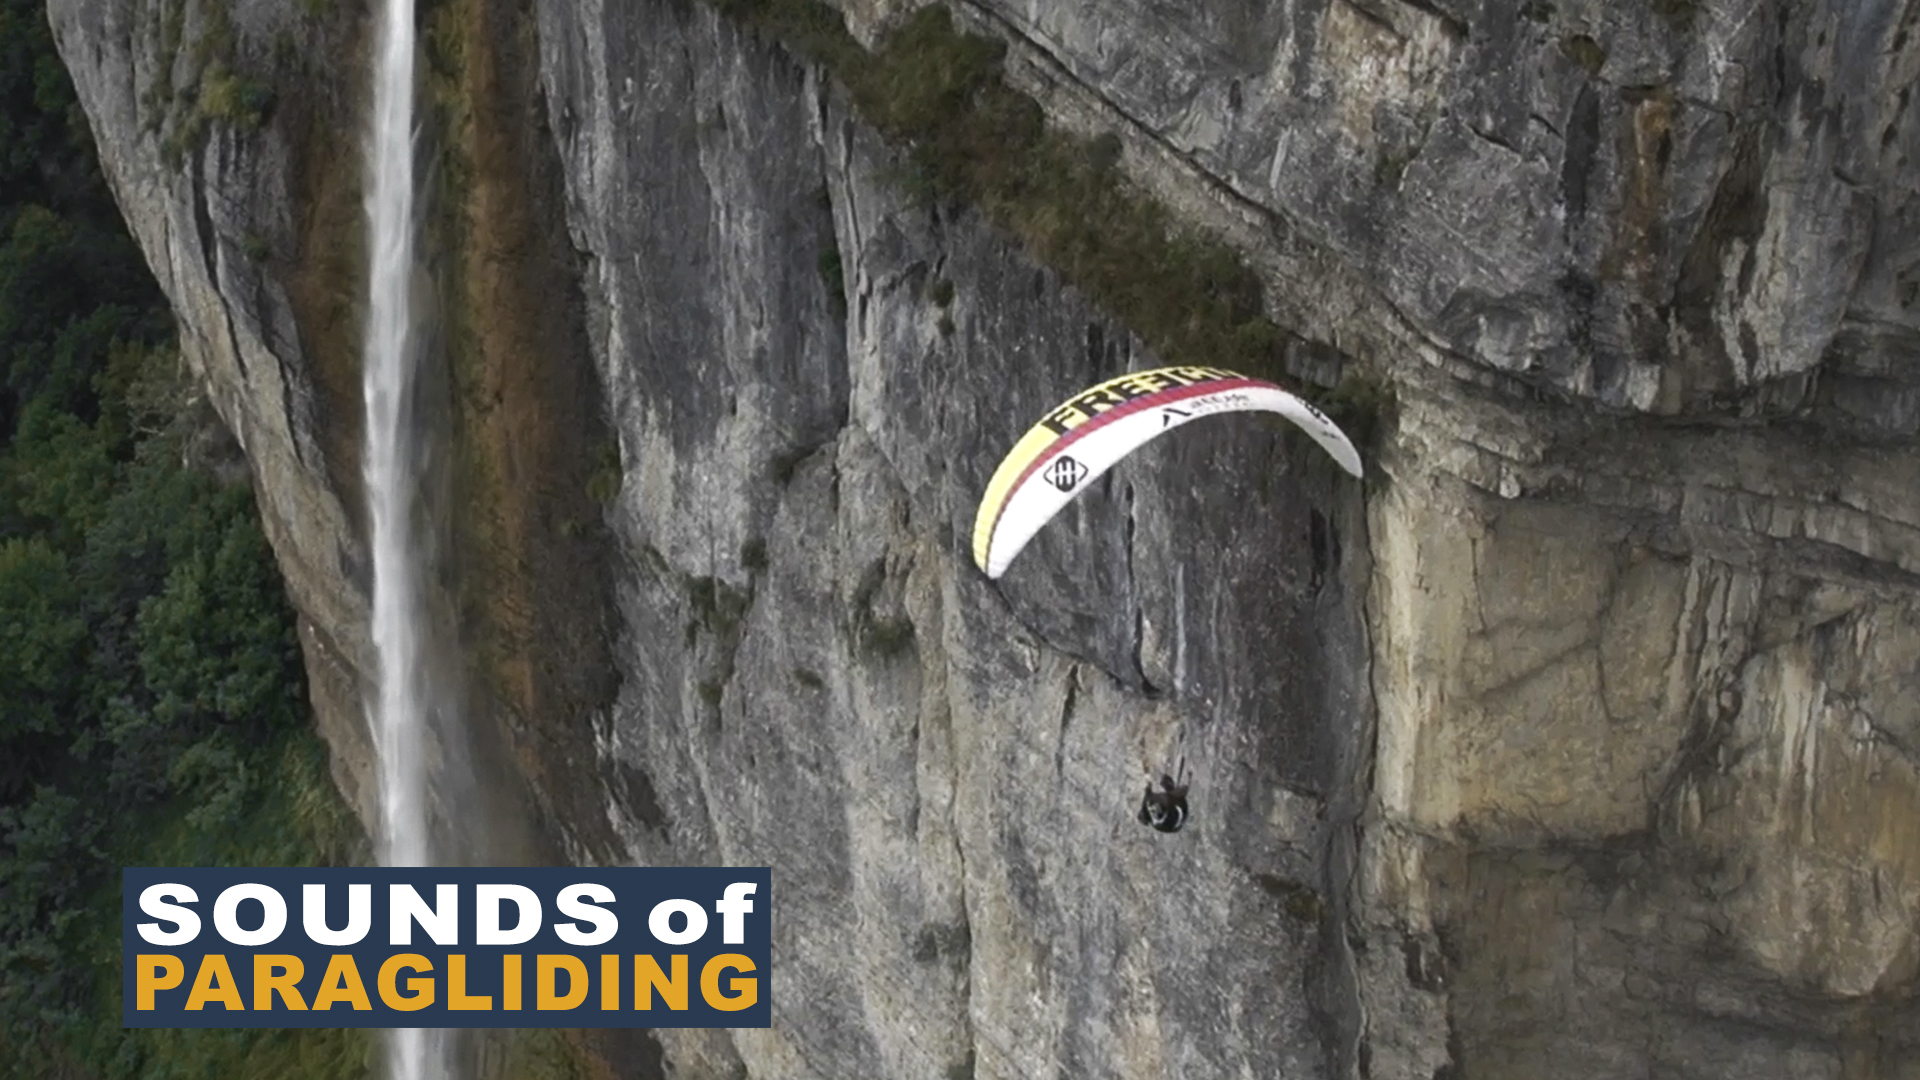 adv_sounds-of-paragliding_small